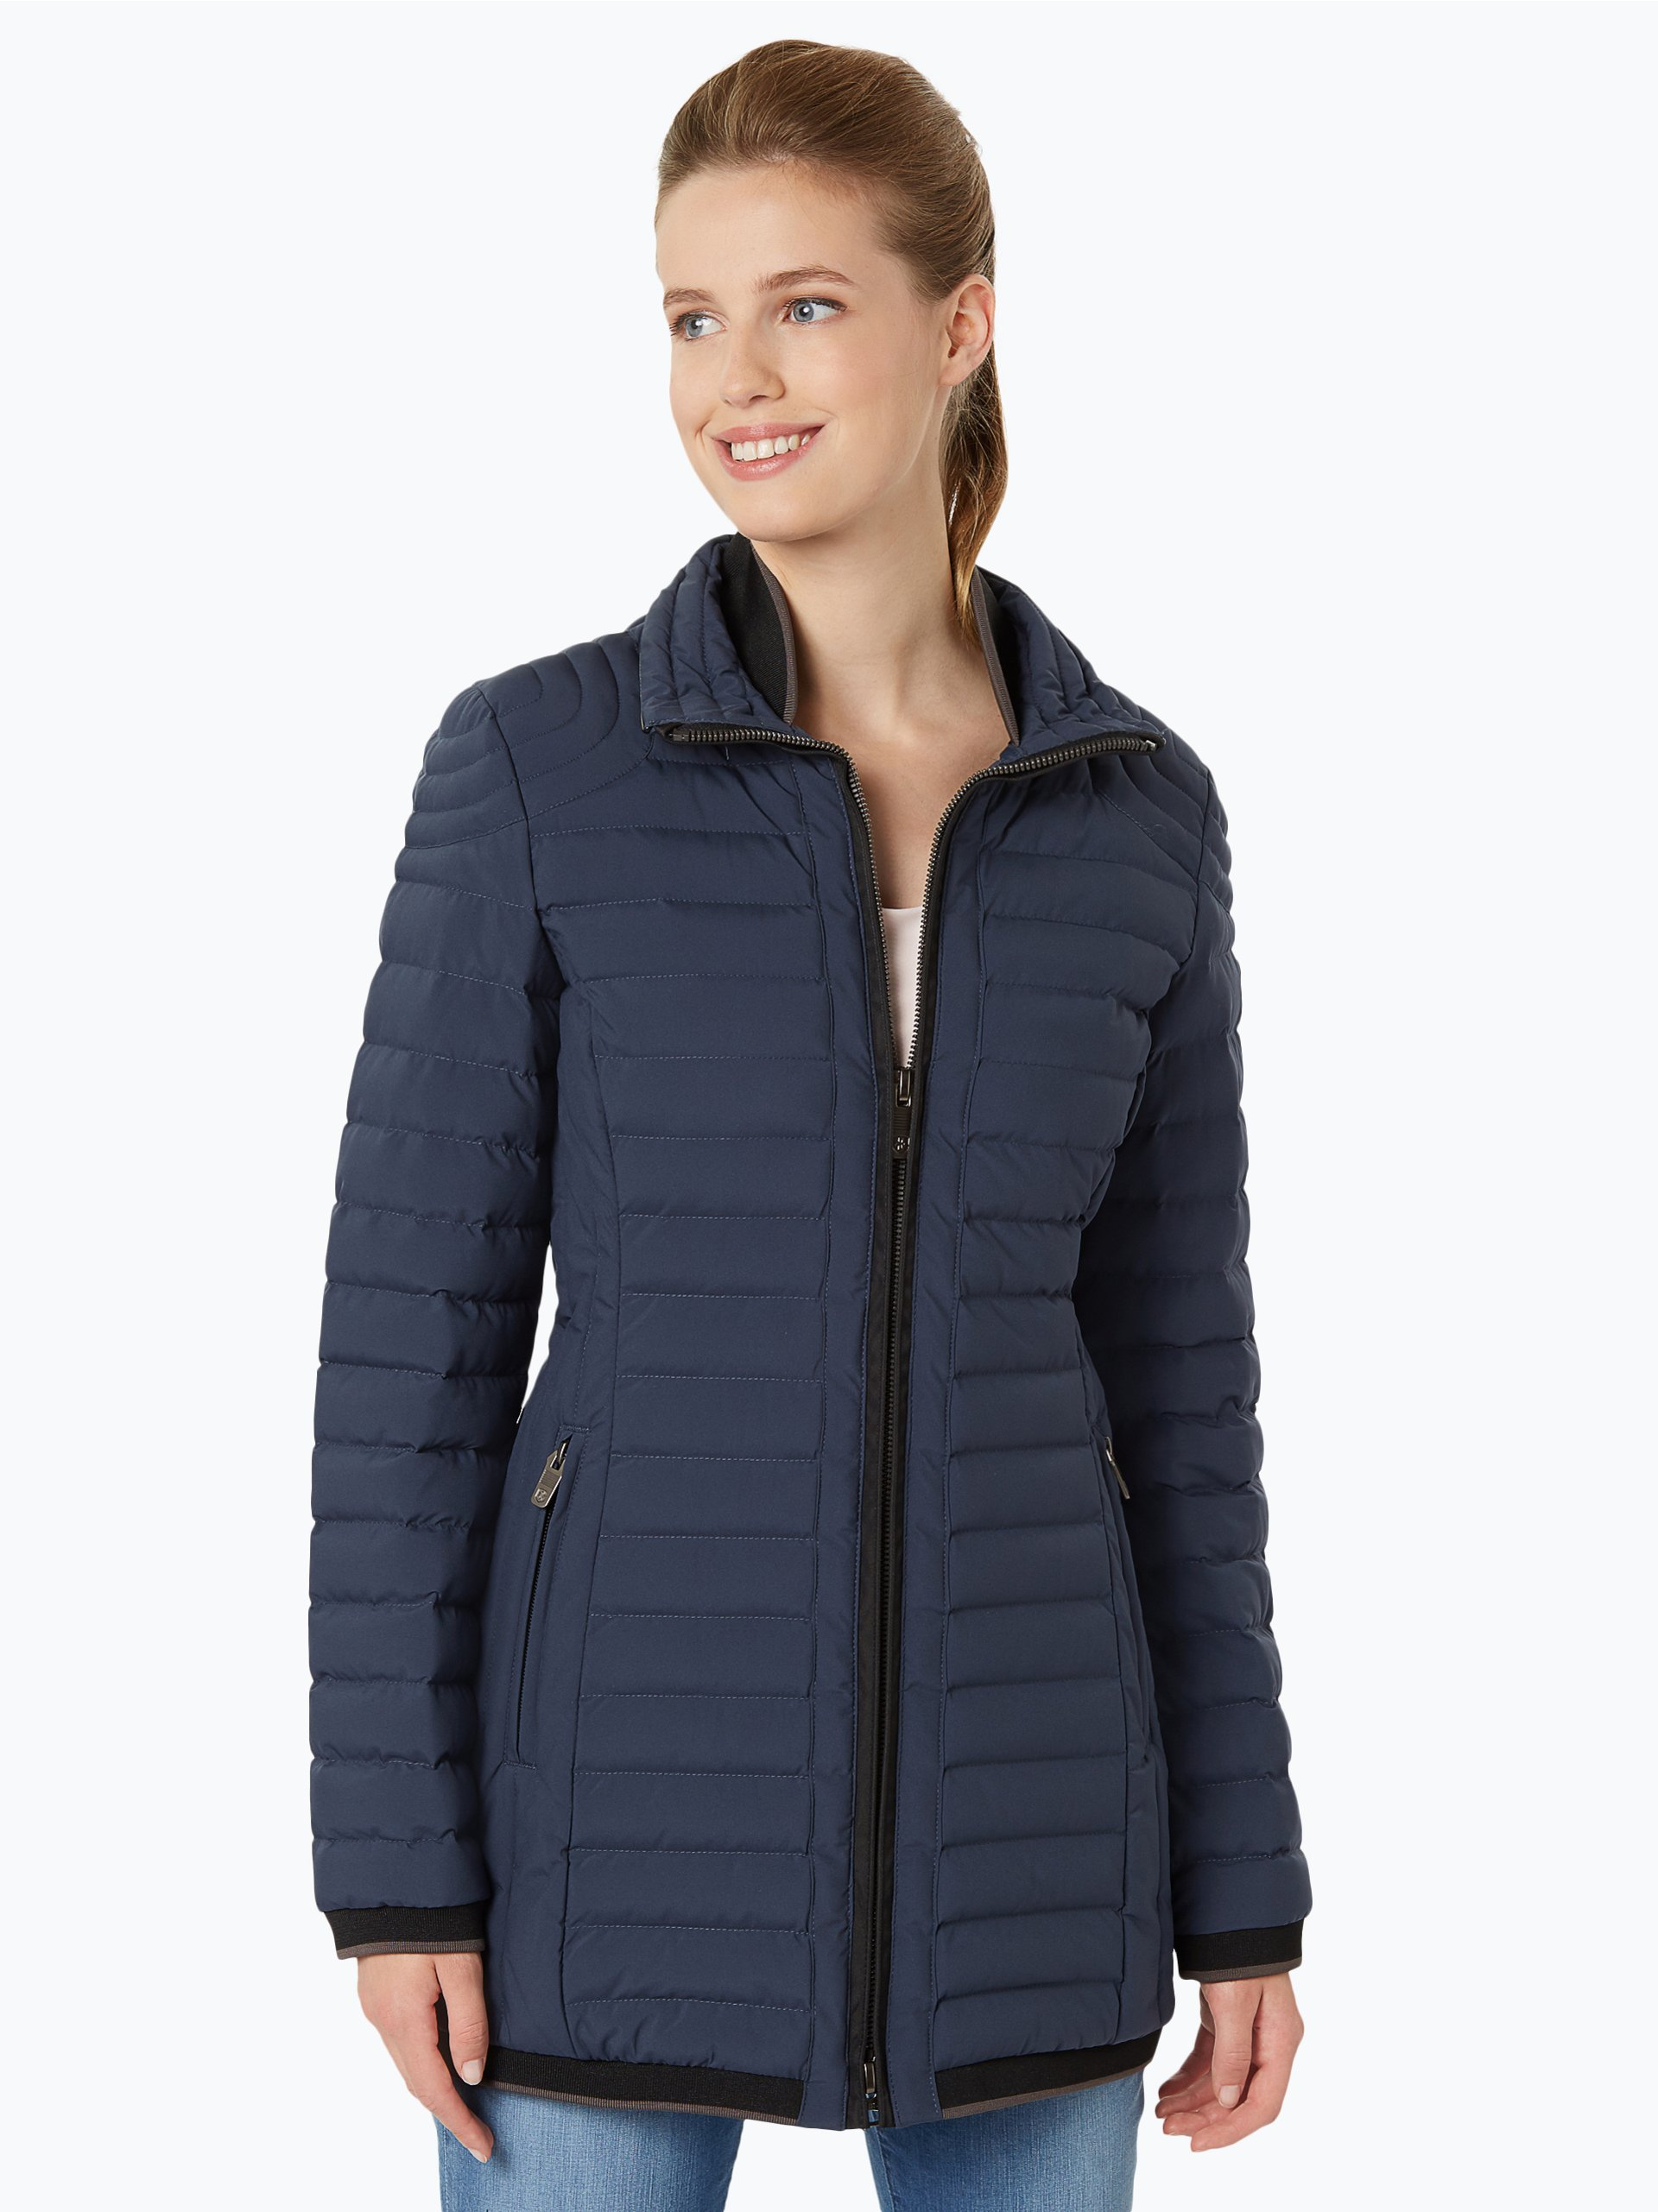 Wellensteyn Damen Funktionsjacke - Helium Medium